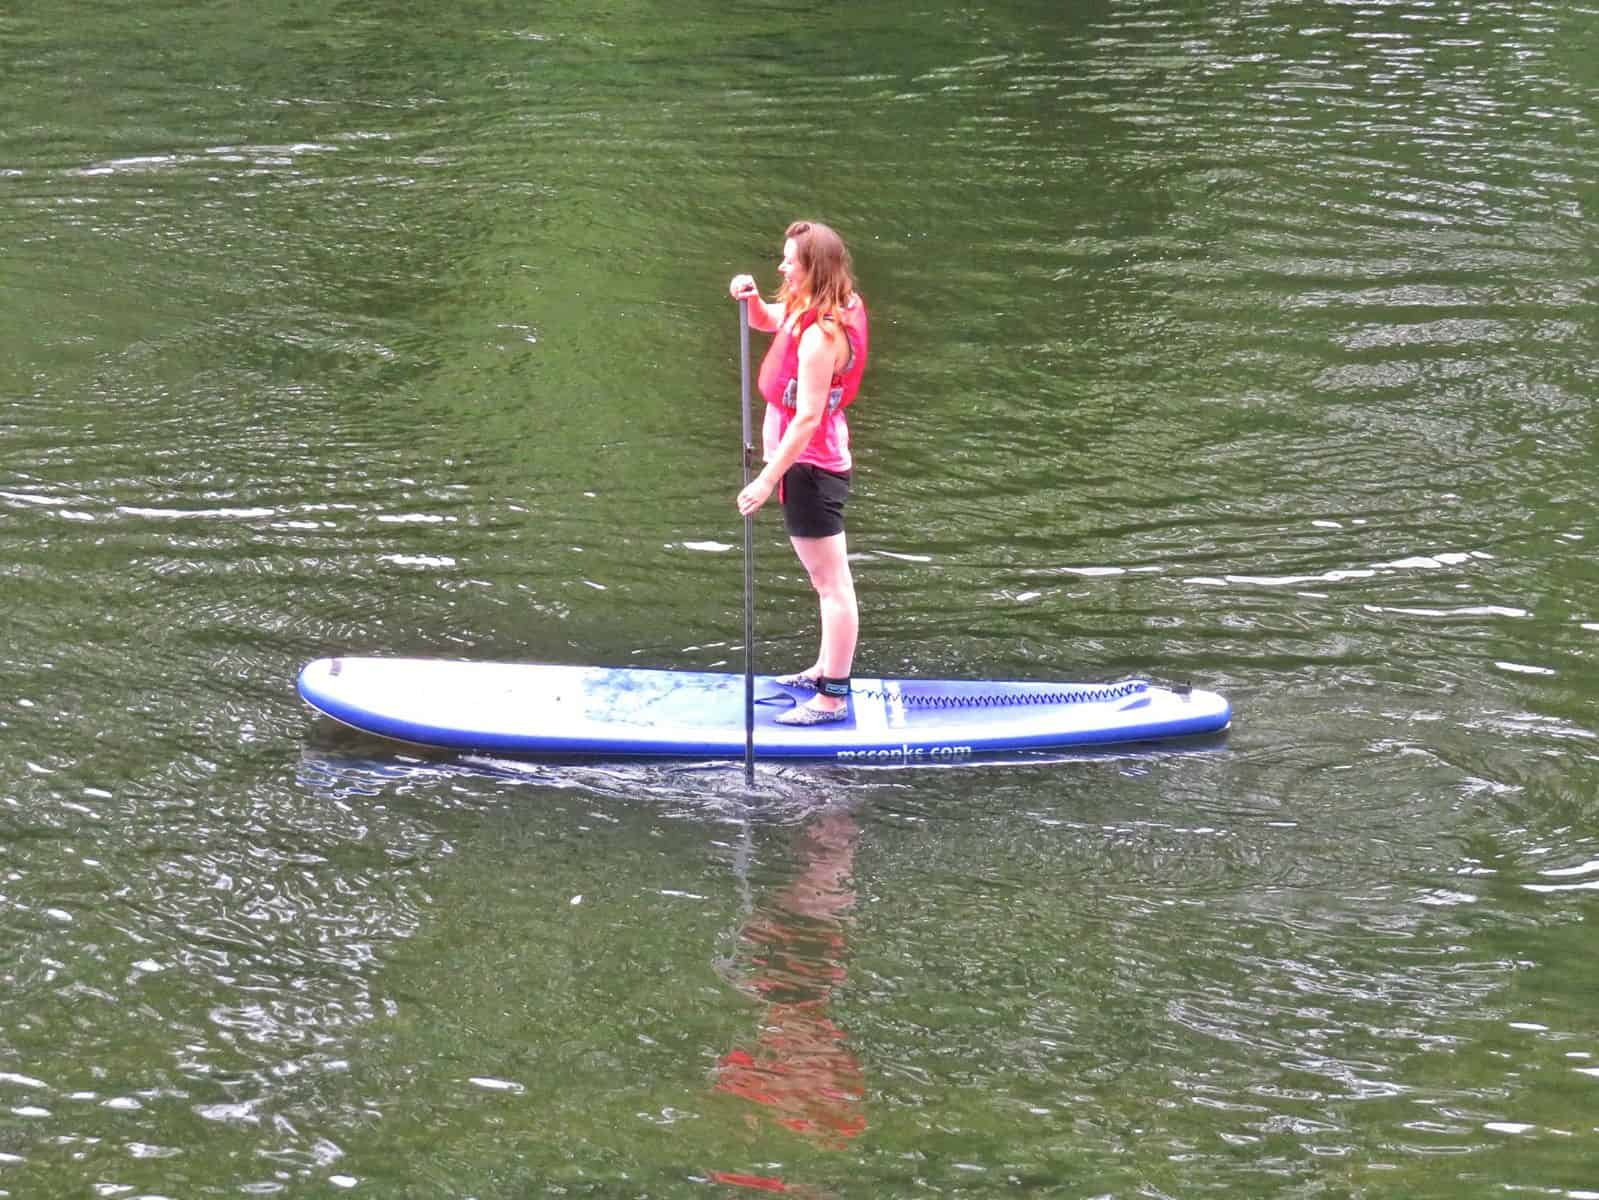 Inspire2Adventure SUP lesson standing on individual SUP